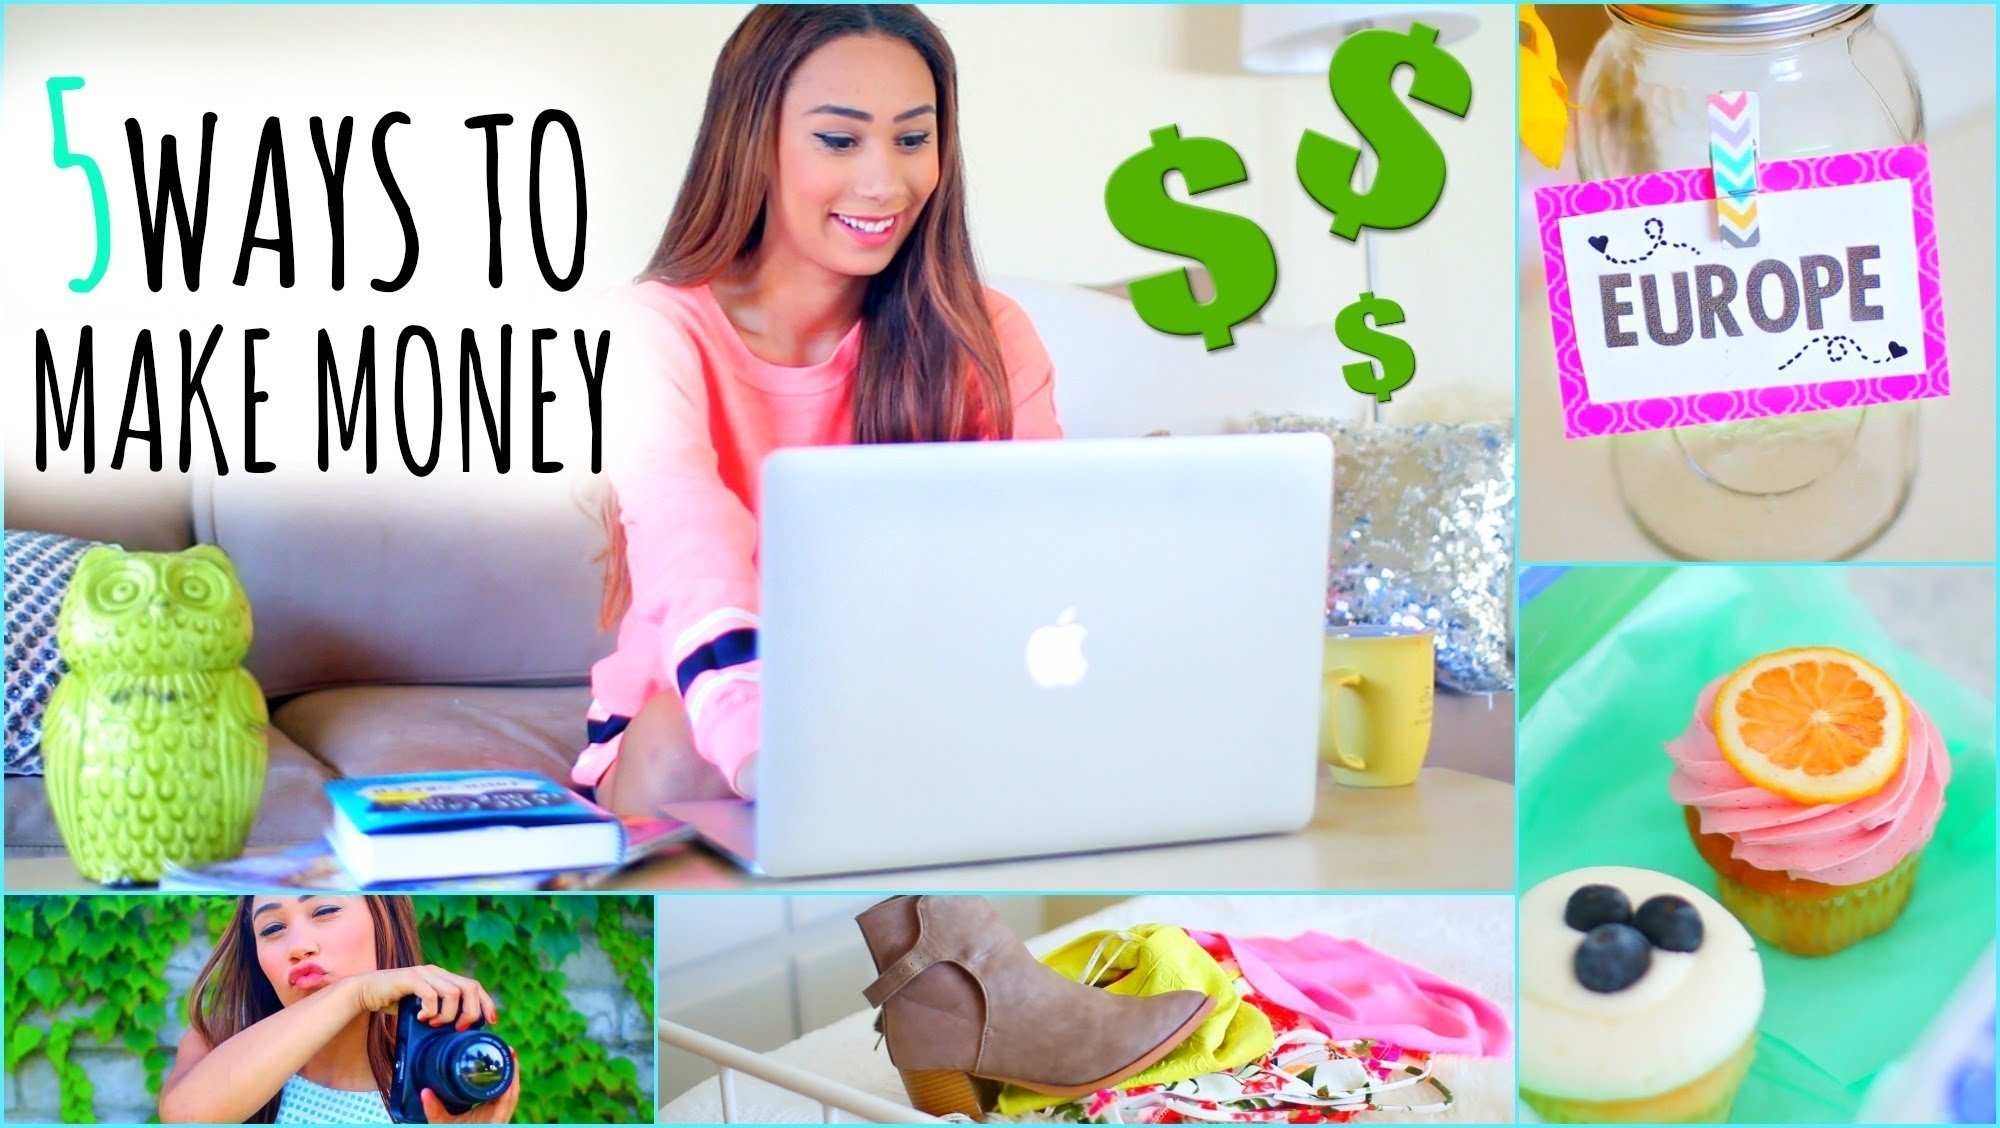 10 Attractive Money Making Ideas For Kids 5 ways to make money this summer e298bc on the internet youtube 1 2021